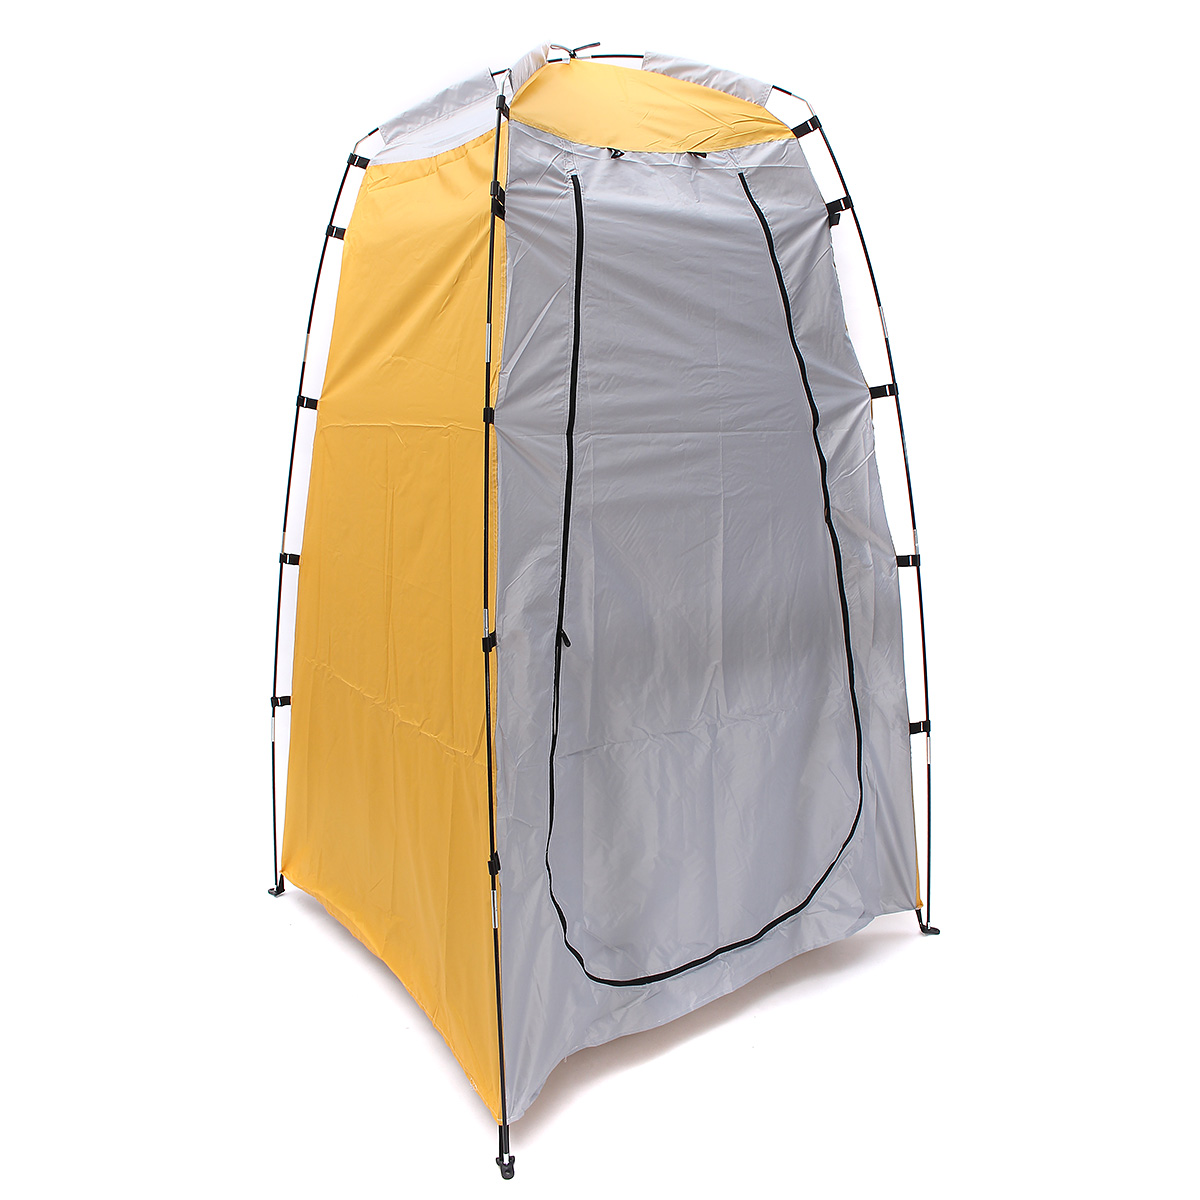 IPRee Protable Pop Up Outdoor Privacy Tent Sunshade Dre